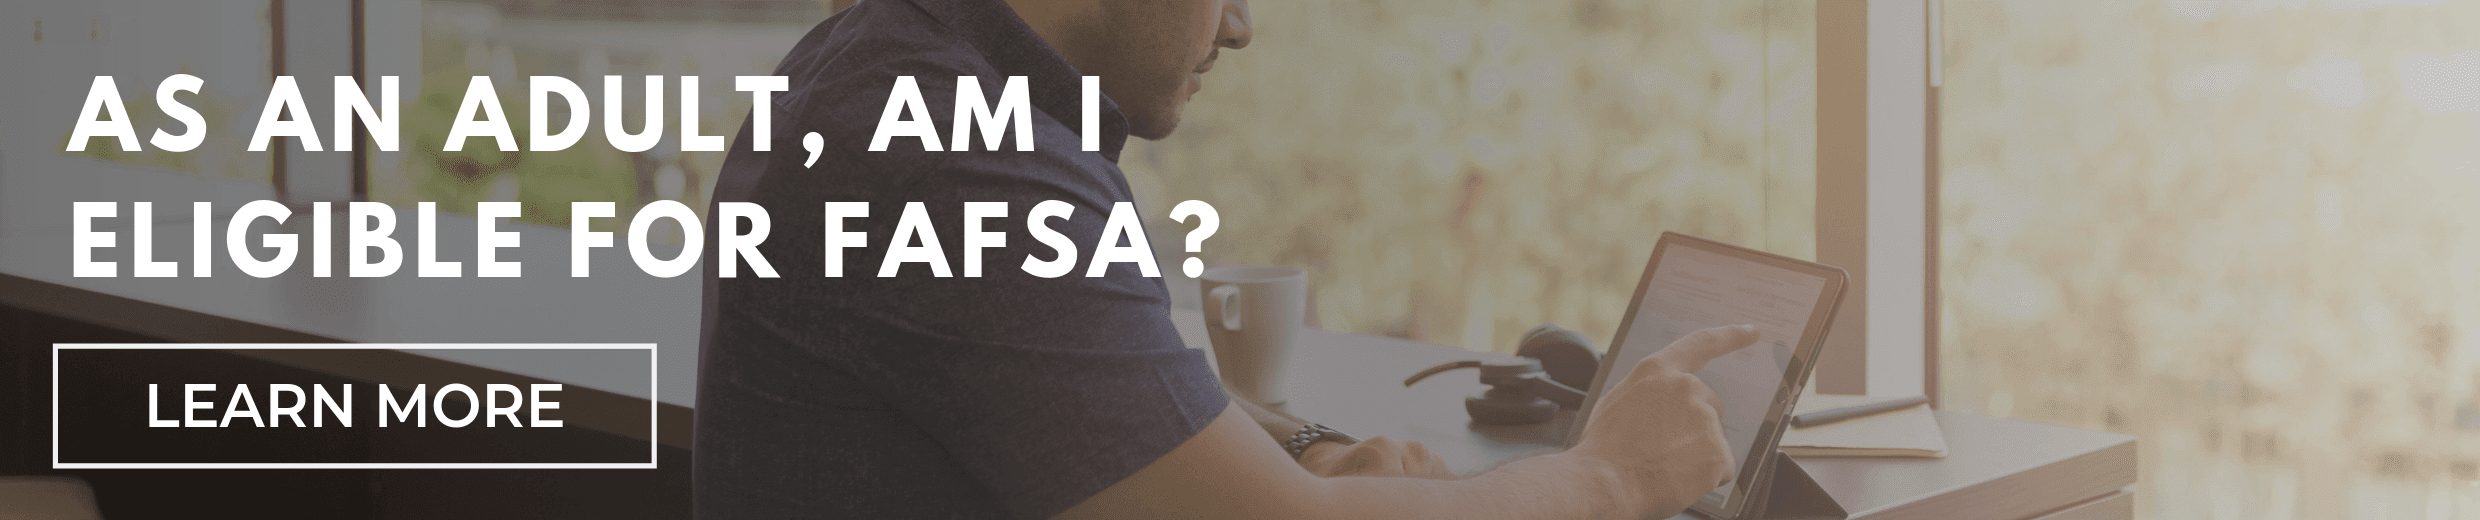 As an Adult, am I Eligible for FAFSA?